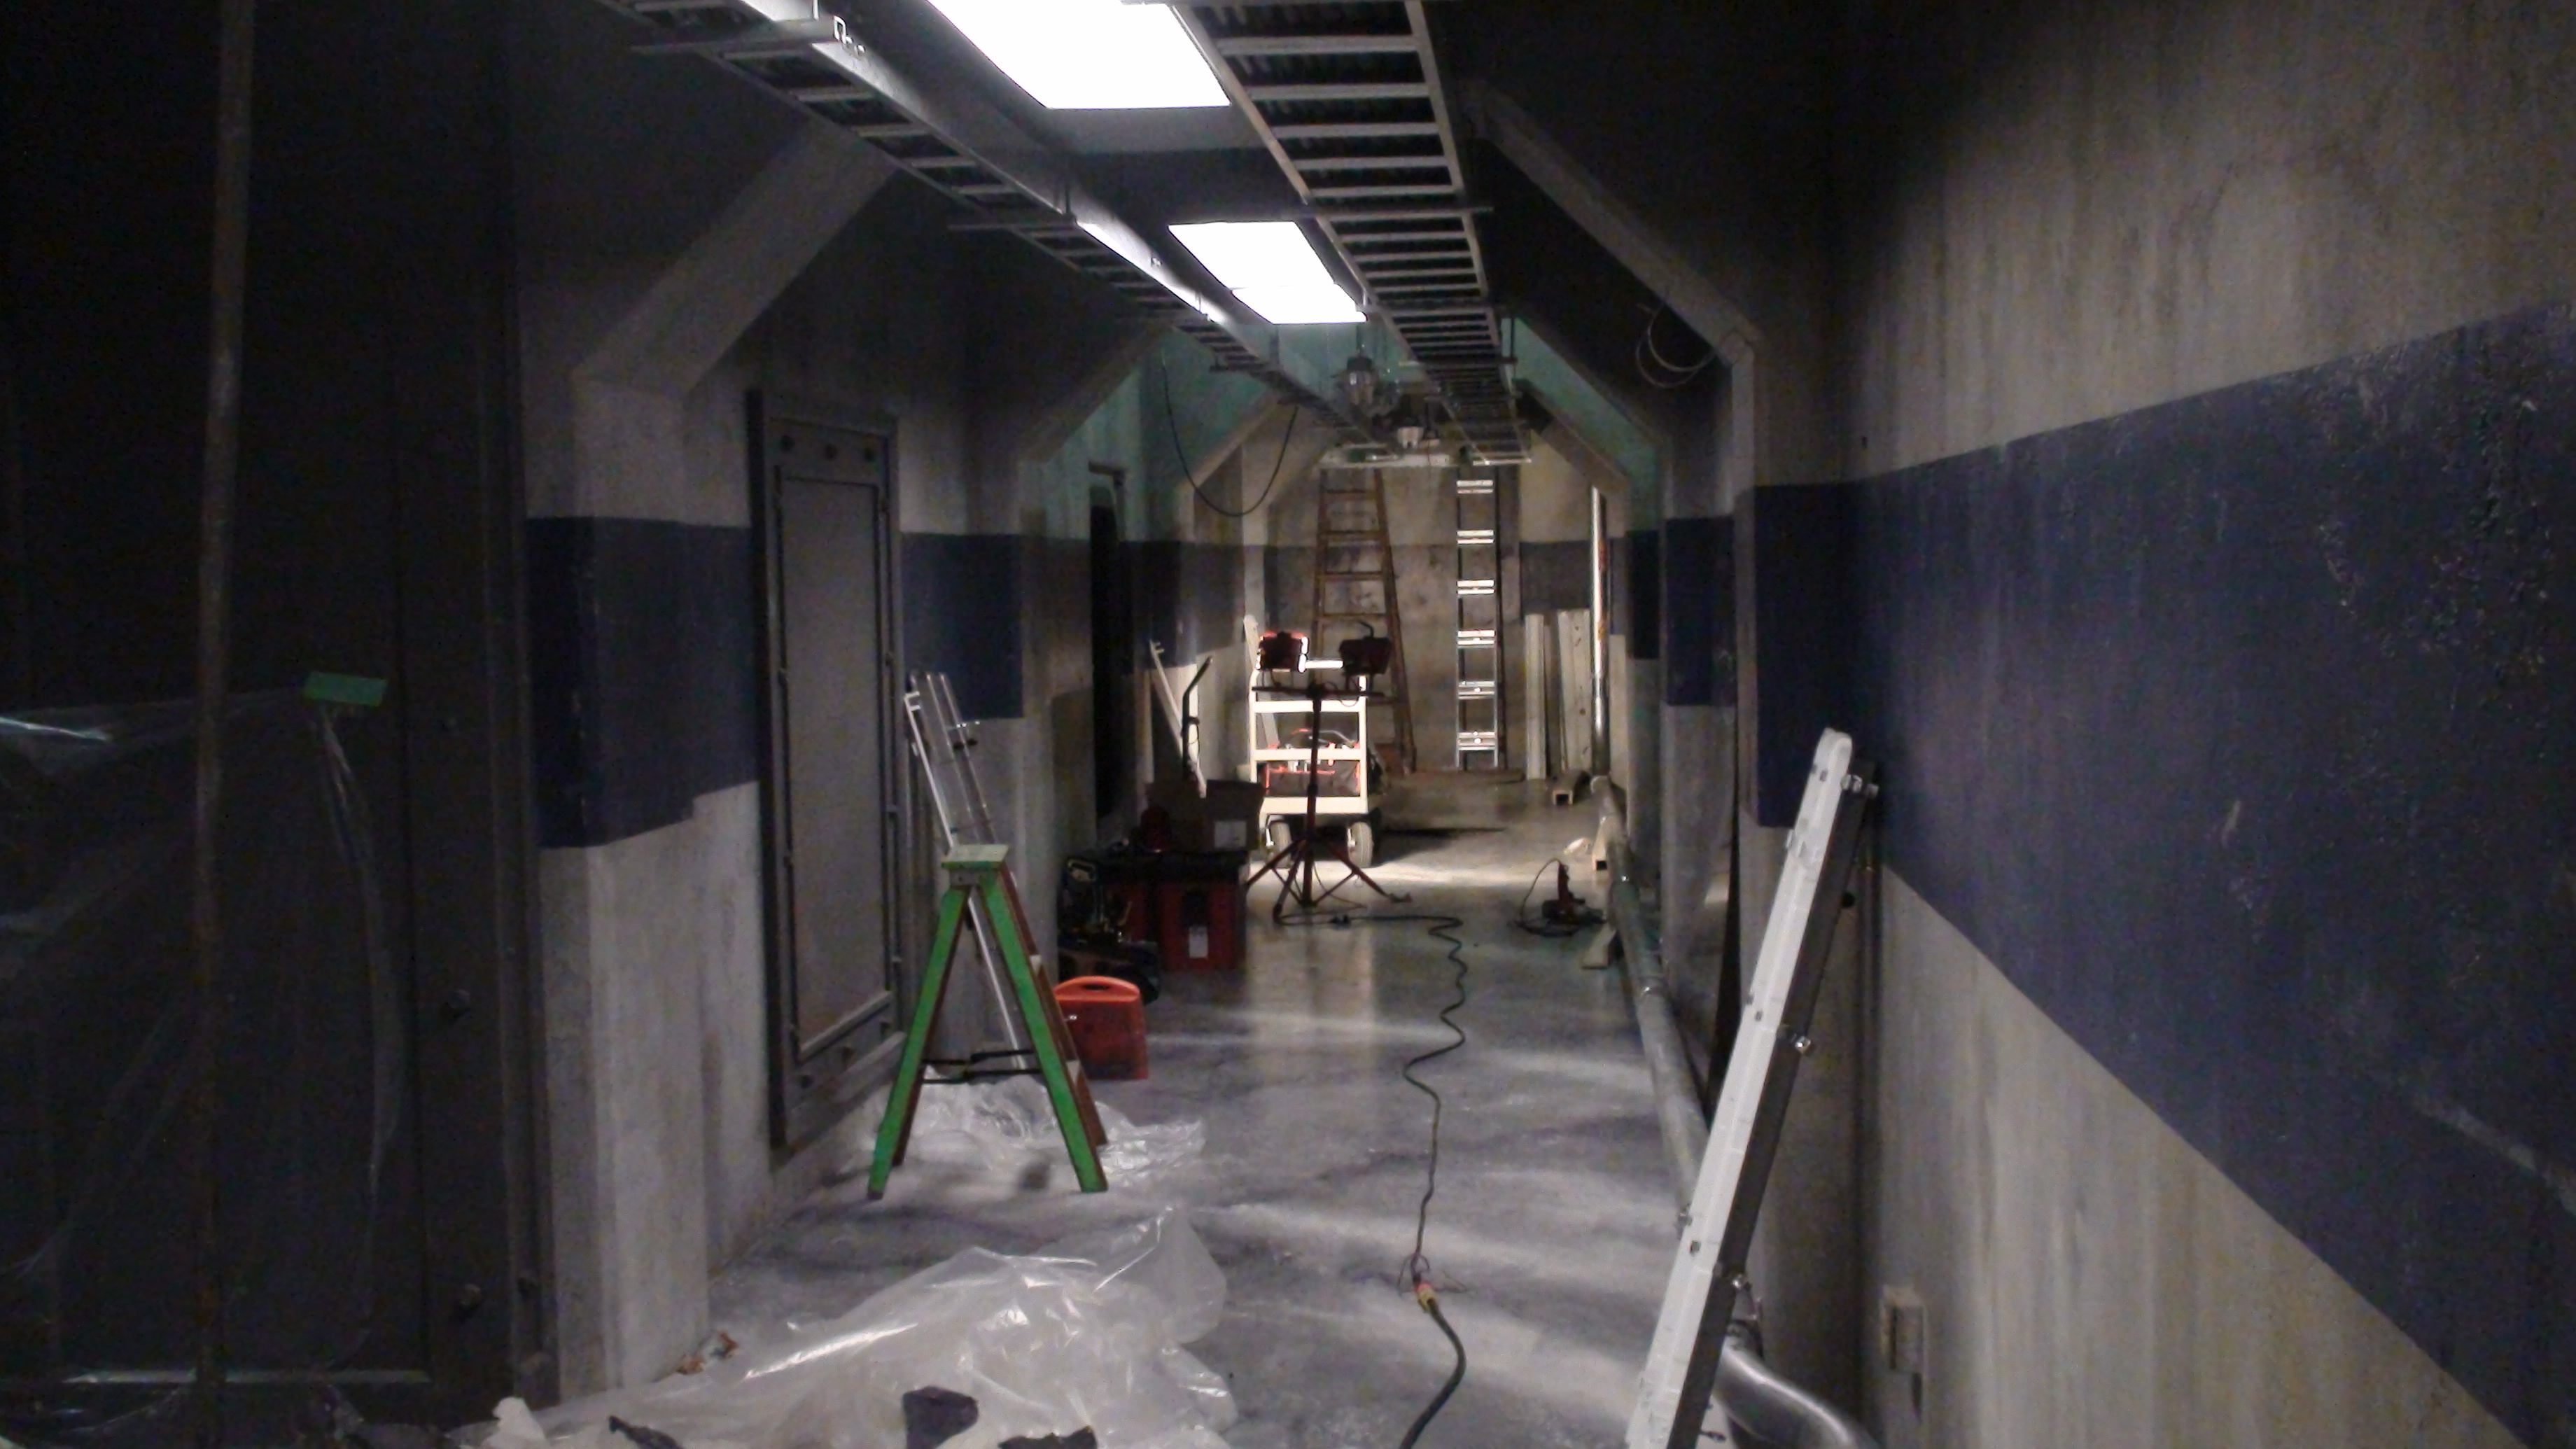 May 3, 2009: Transforming Stage 5 From Stargate Command to ...